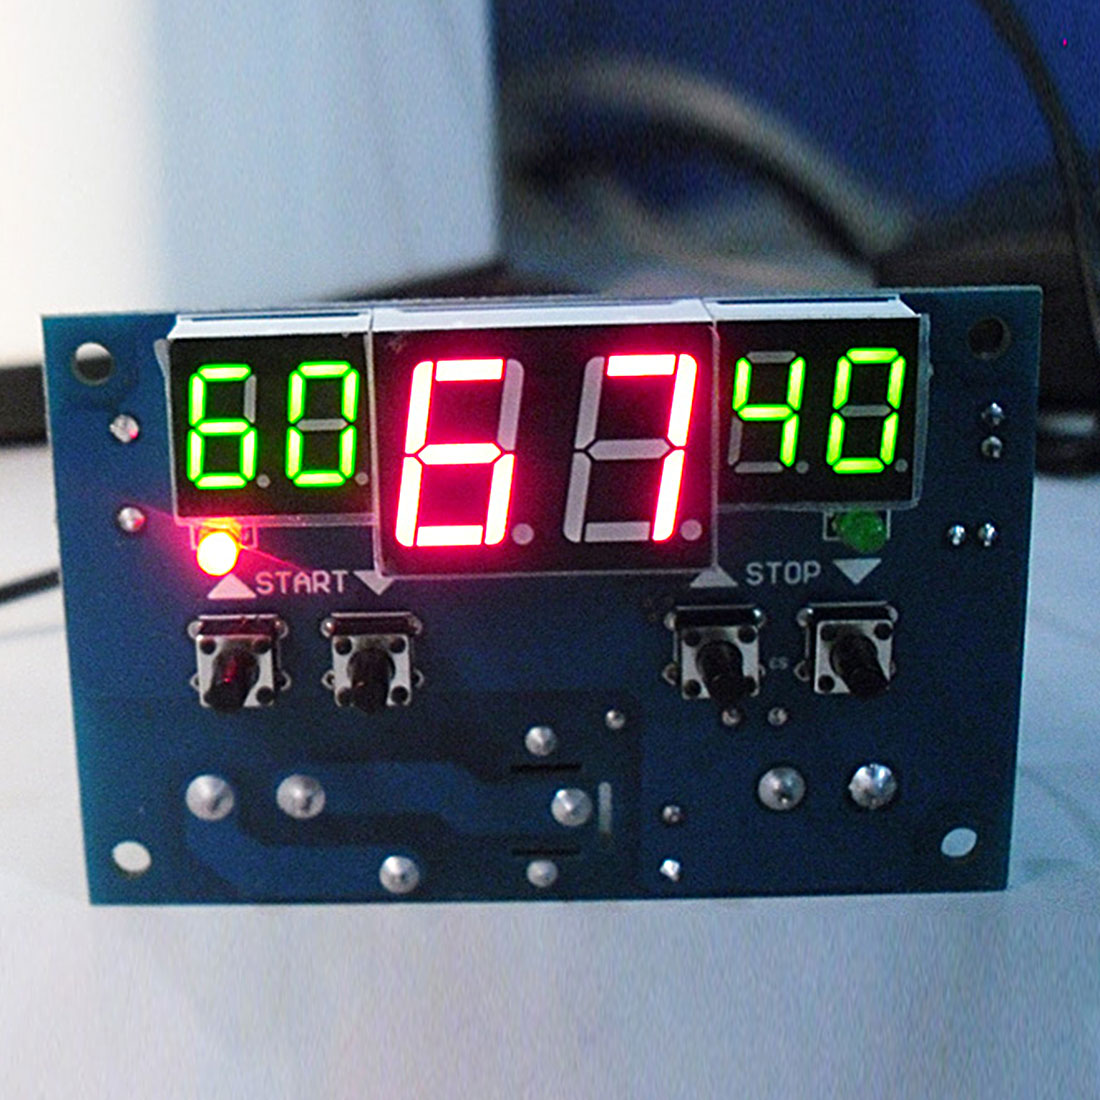 Good DC 12V Intelligent Digital Thermostat Temperature Controller Regulator with <font><b>NTC</b></font> <font><b>Sensor</b></font> <font><b>W1401</b></font> image